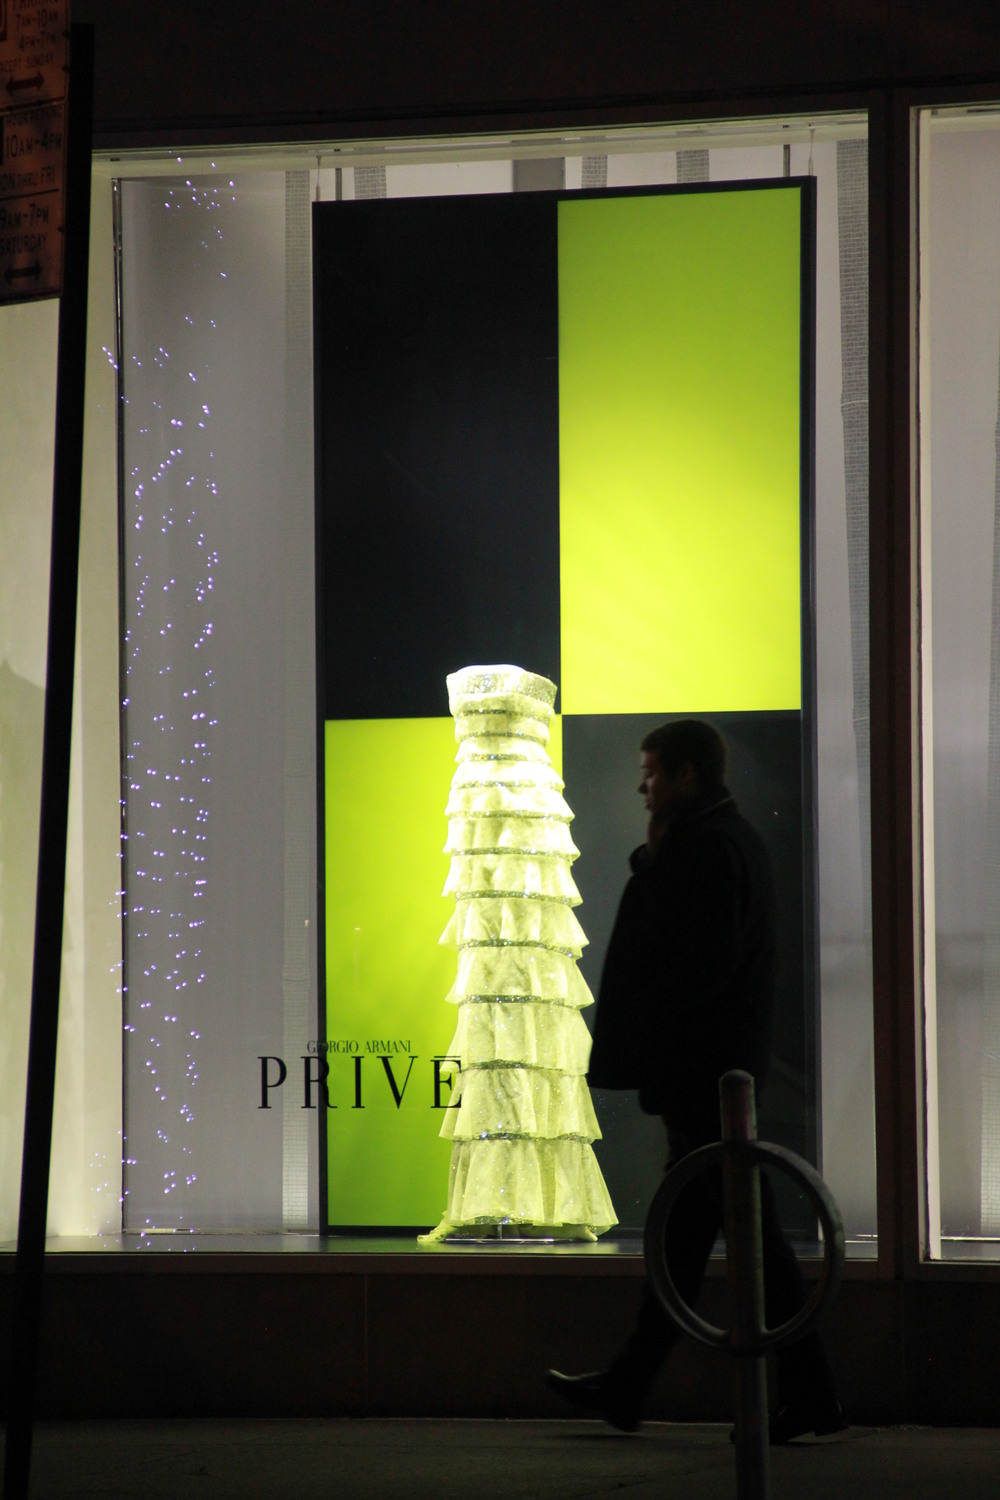 backlit window displays produced and installed for Giorgio Armani.